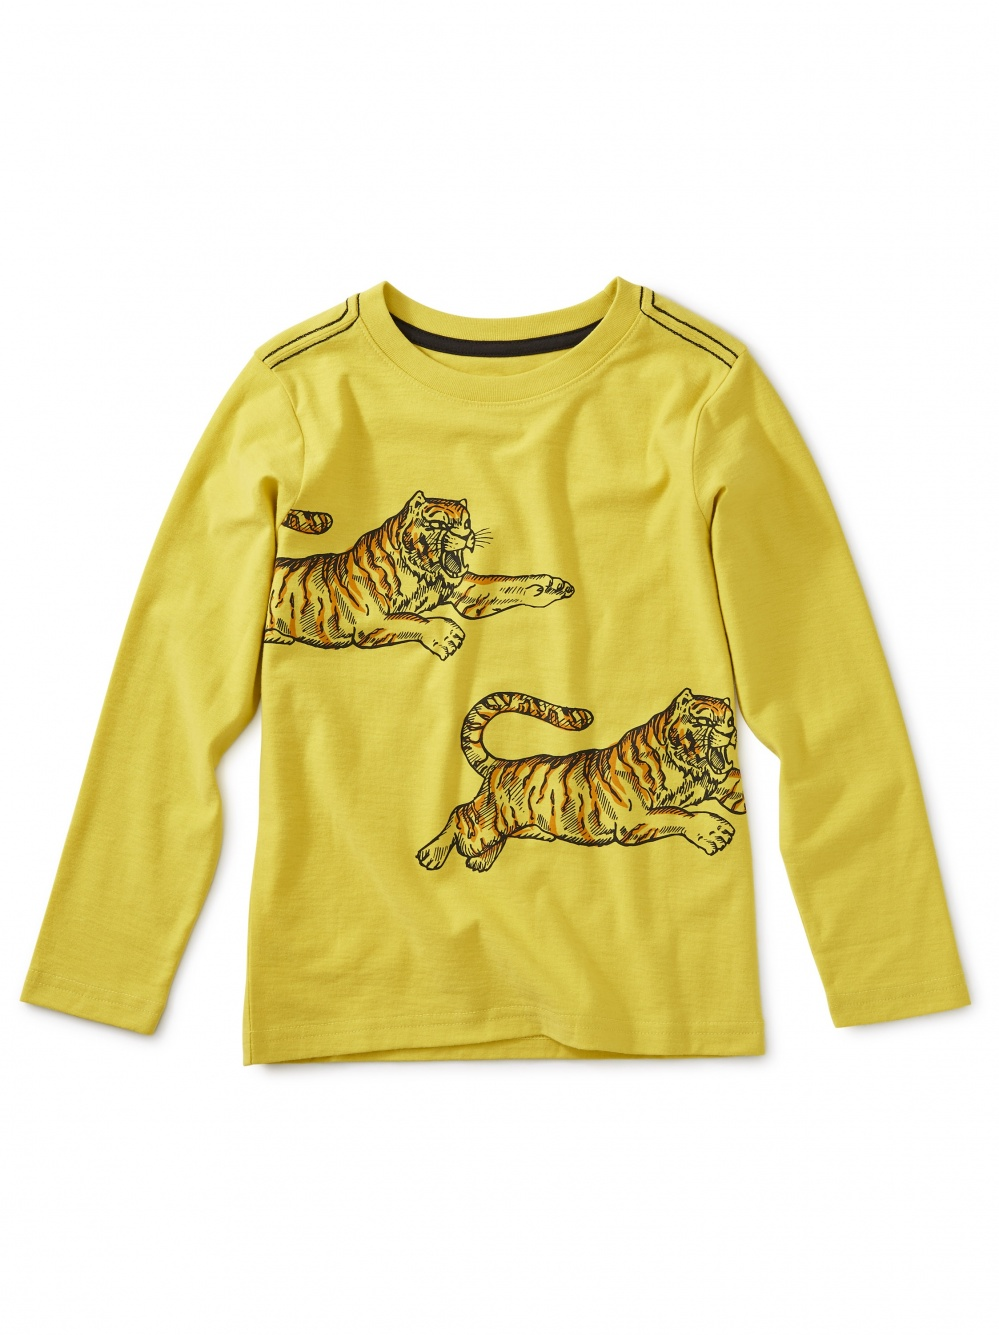 Flying Tigers Graphic Tee